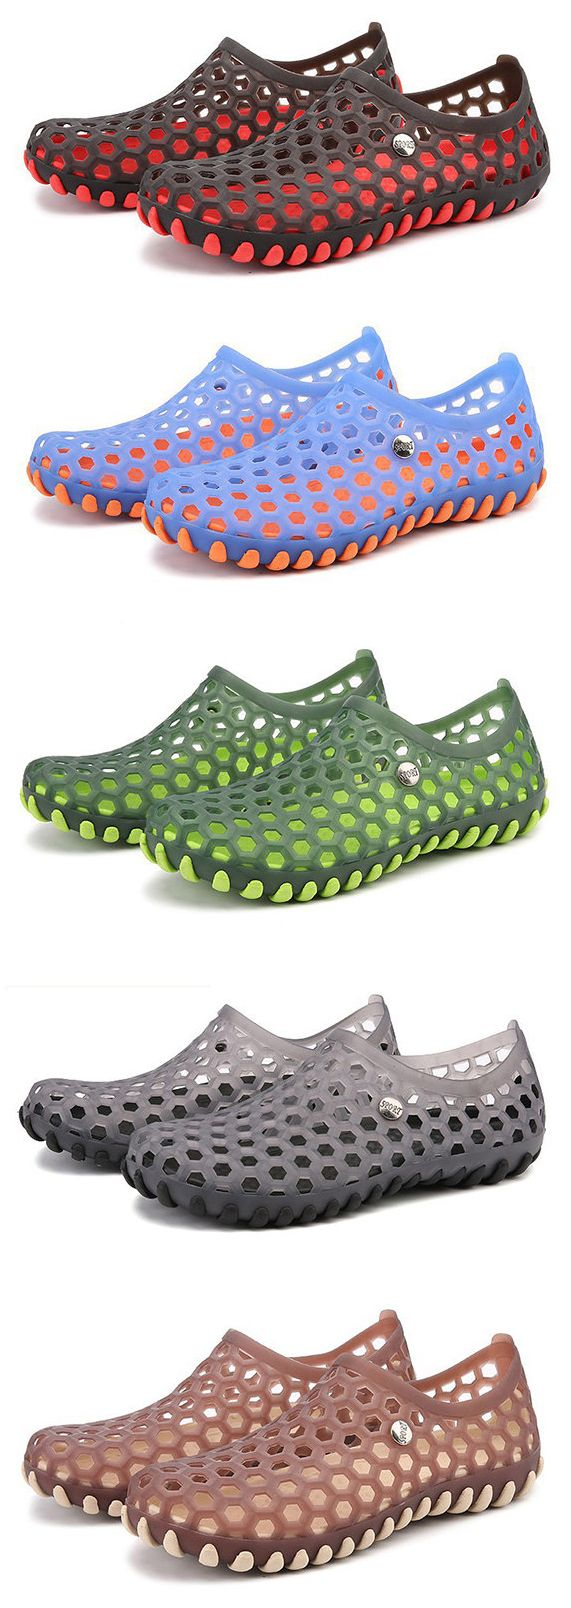 Men Soft Massage Removable Insole Beach Sandals Casual Water Shoes